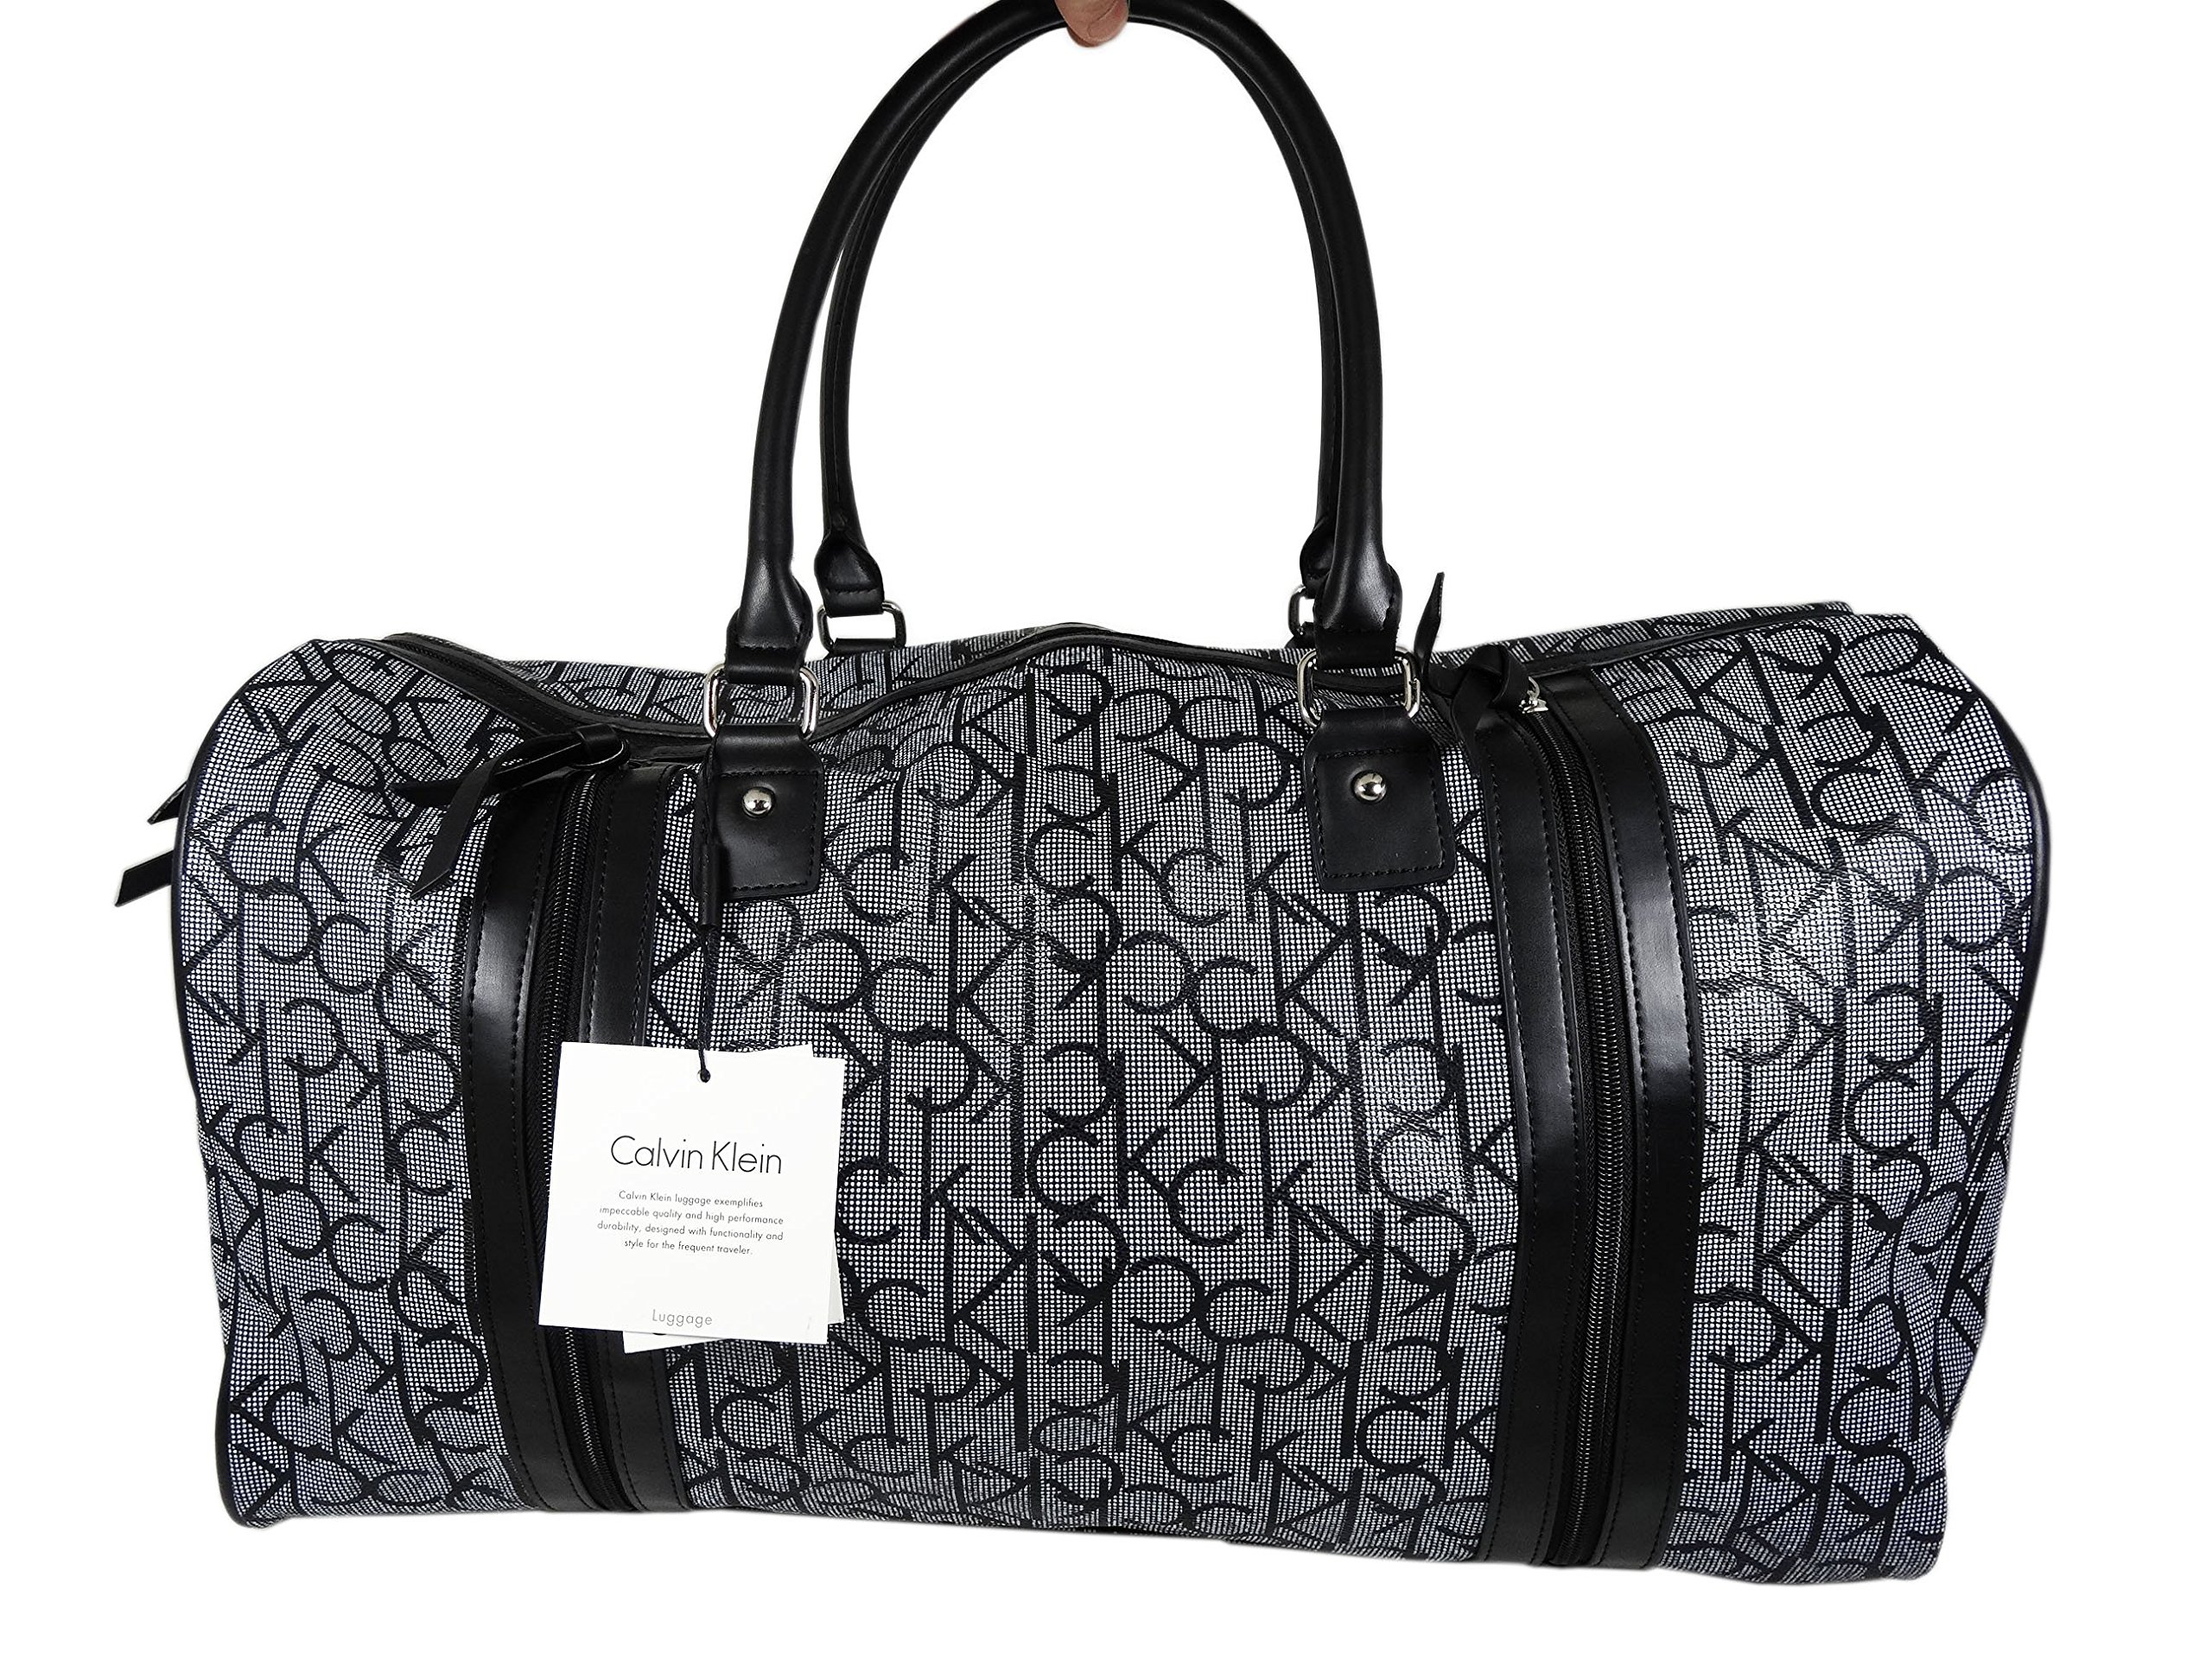 Calvin Klein Large Two Zippered Front Duffle Bag Luggage CK (Black/White)